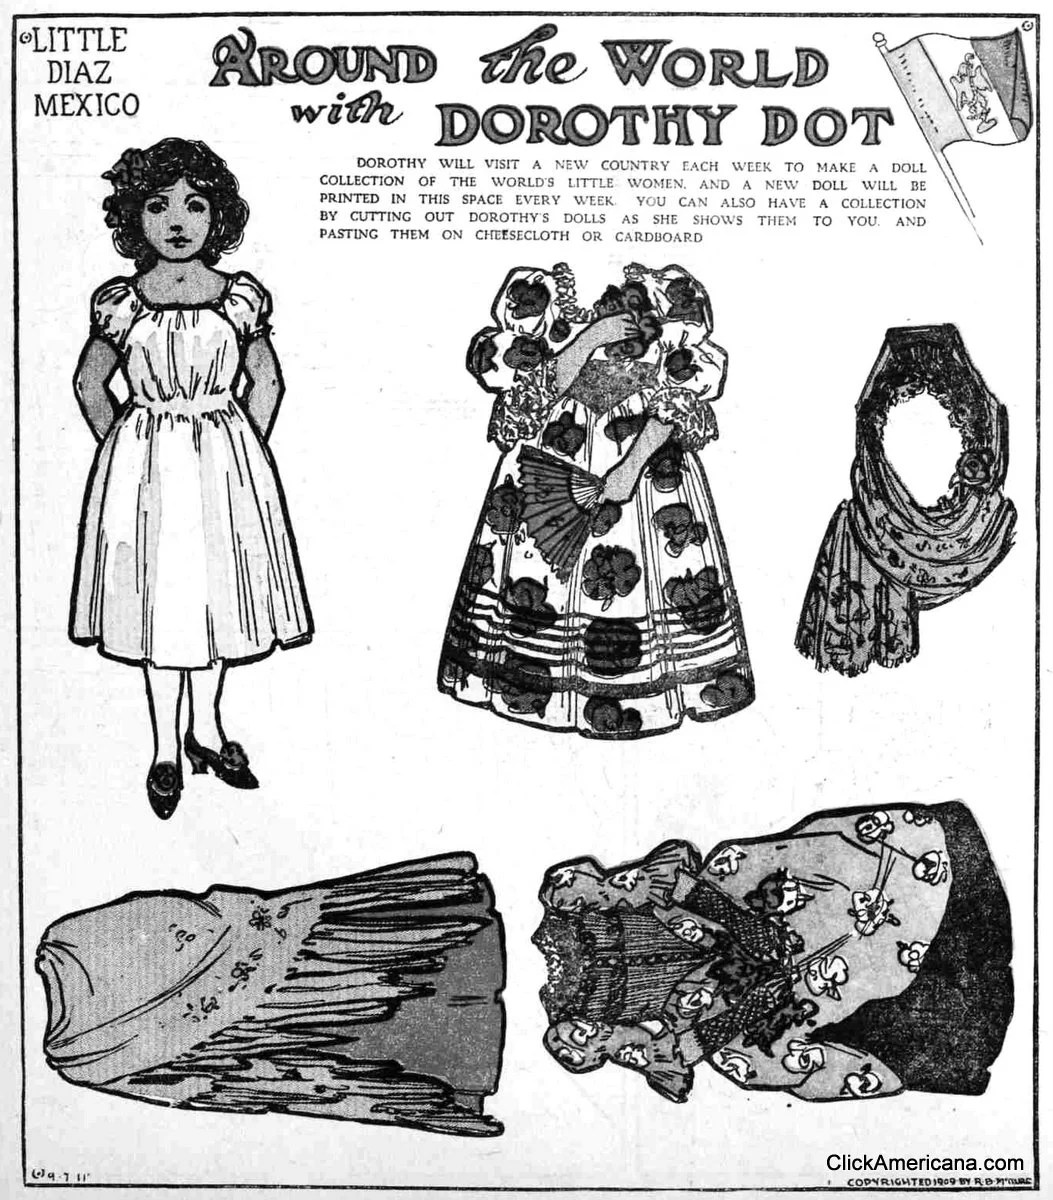 Dorothy Dot paper doll: Little Diaz of Mexico (1909